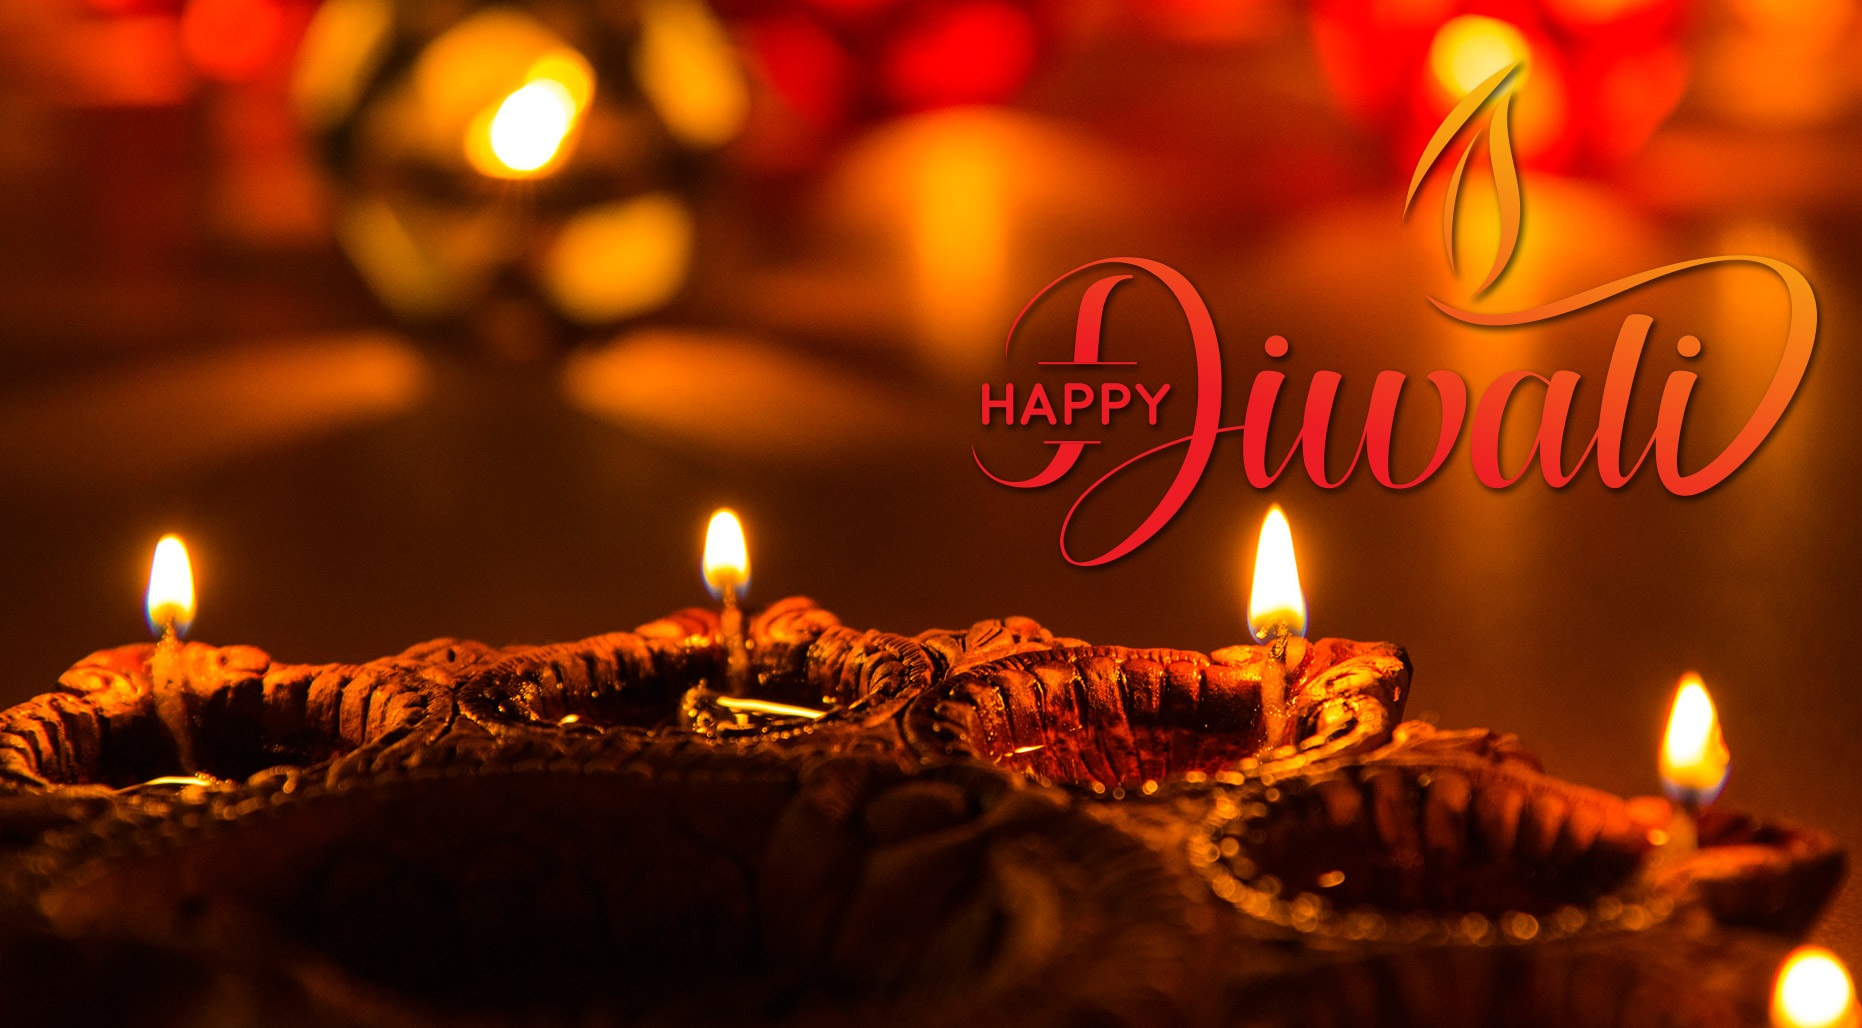 Astrological Significance Of Diwali - The 5 Day Long Festival Of Lights - Truthstar